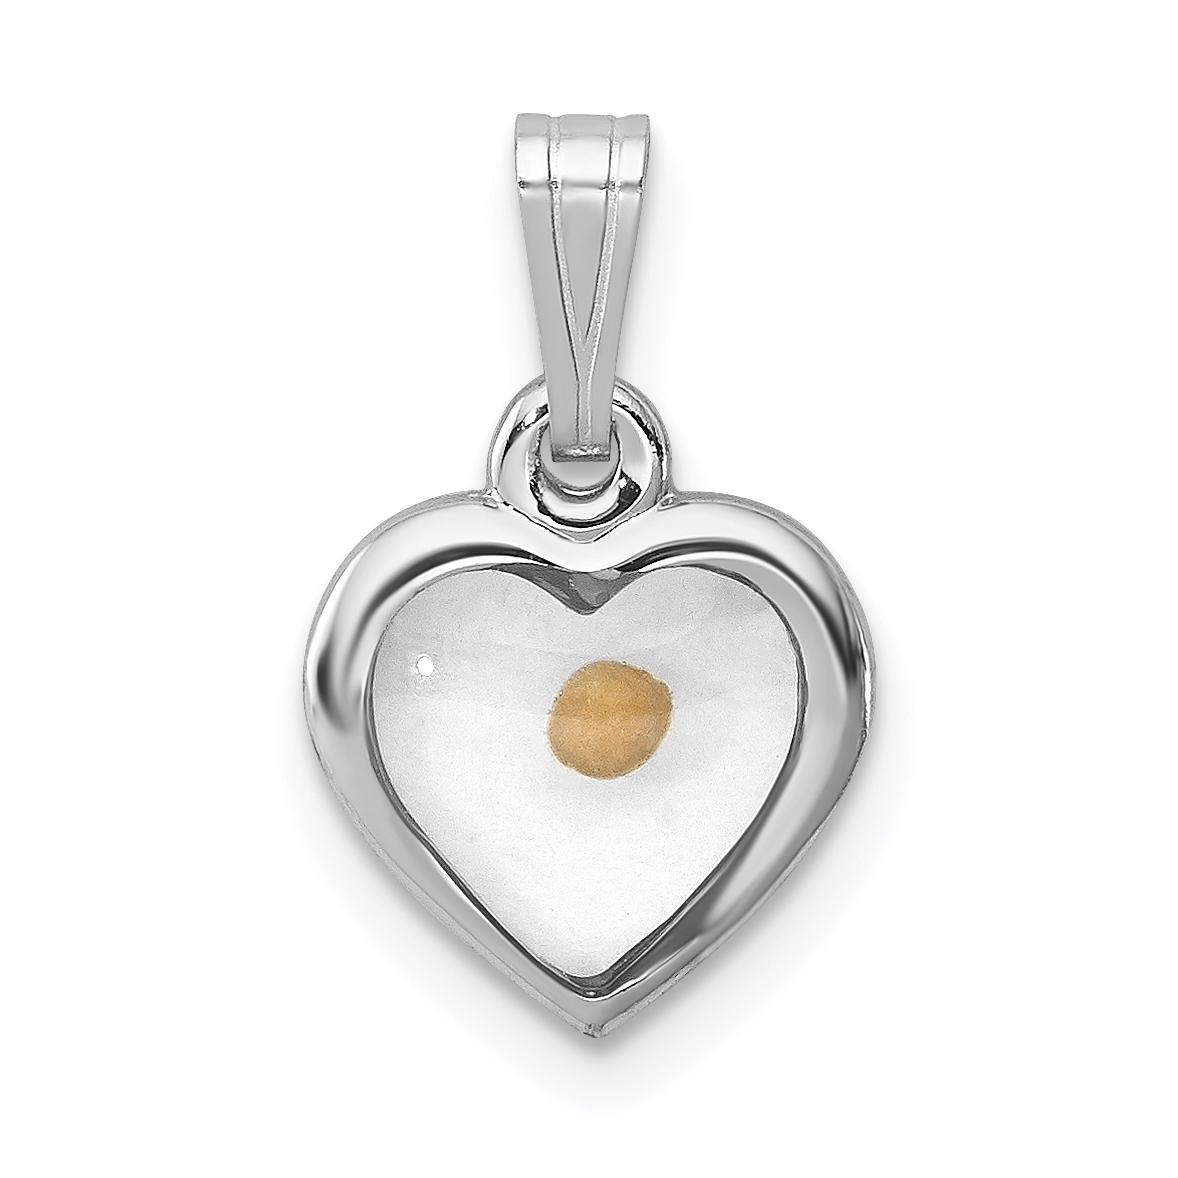 Silver rhodium plated small heart with mustard seed pendant weight sterling silver rhodium plated small heart with mustard seed pendant weight 036 grams length 15mm width 13mm aloadofball Image collections